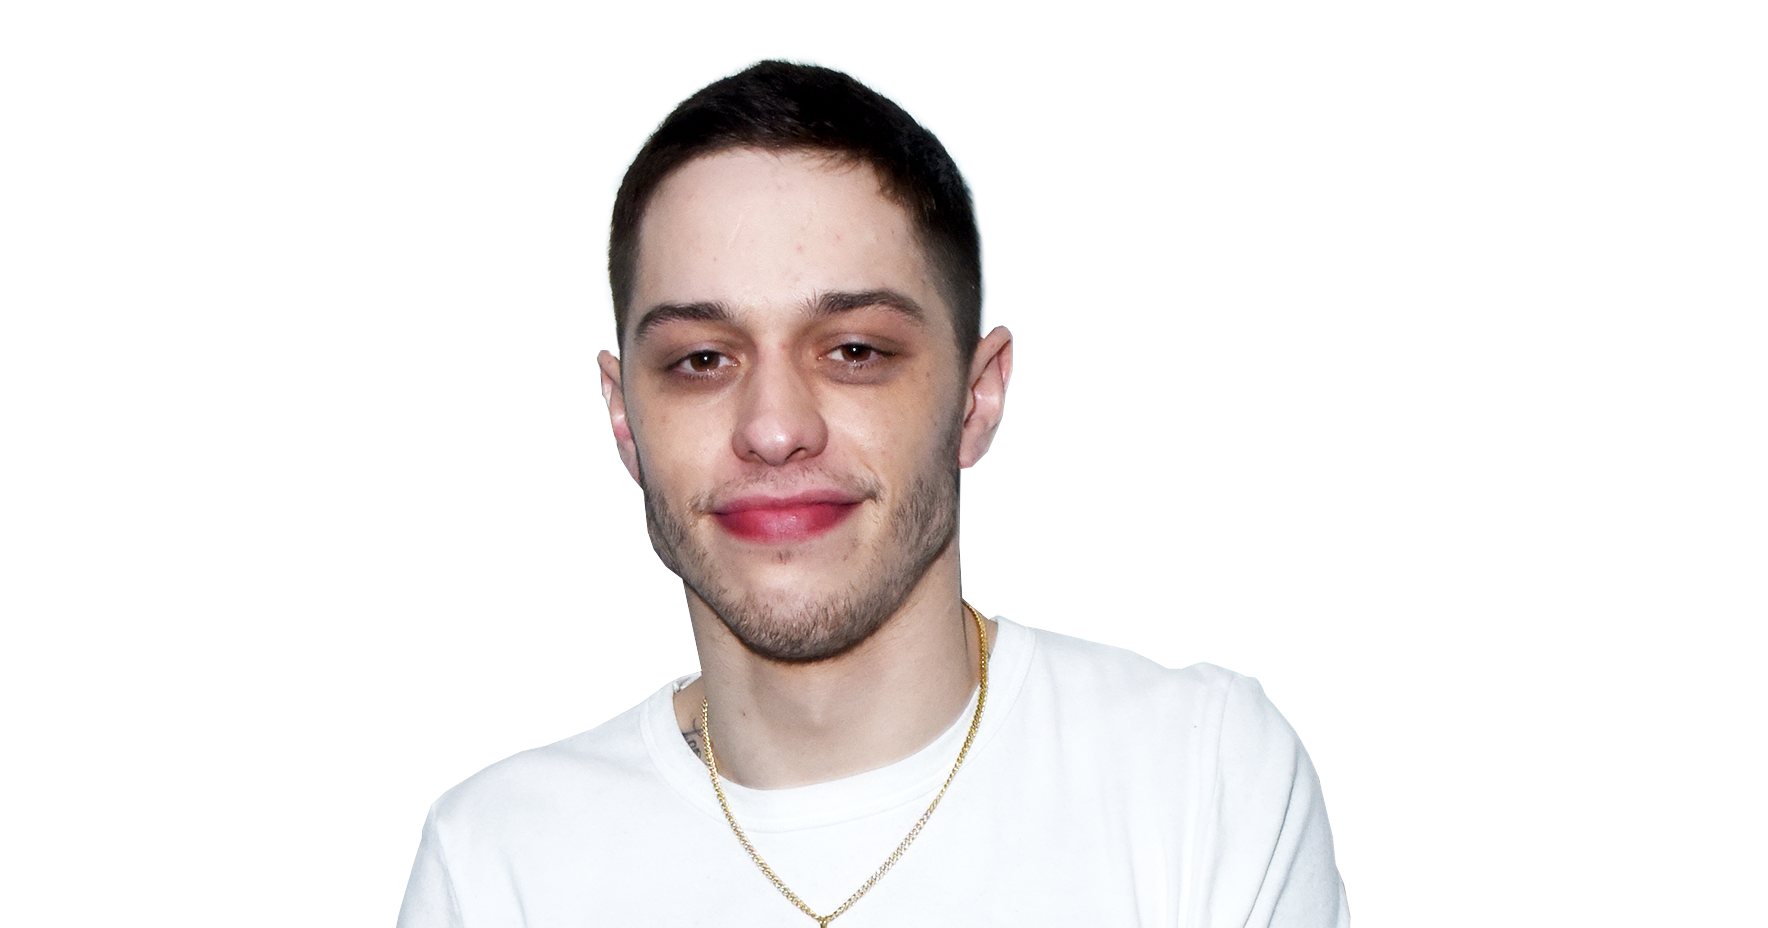 Pete Davidson Went On Kevin Hart's Bizarre YouTube Show As Mr. Ariana Grande